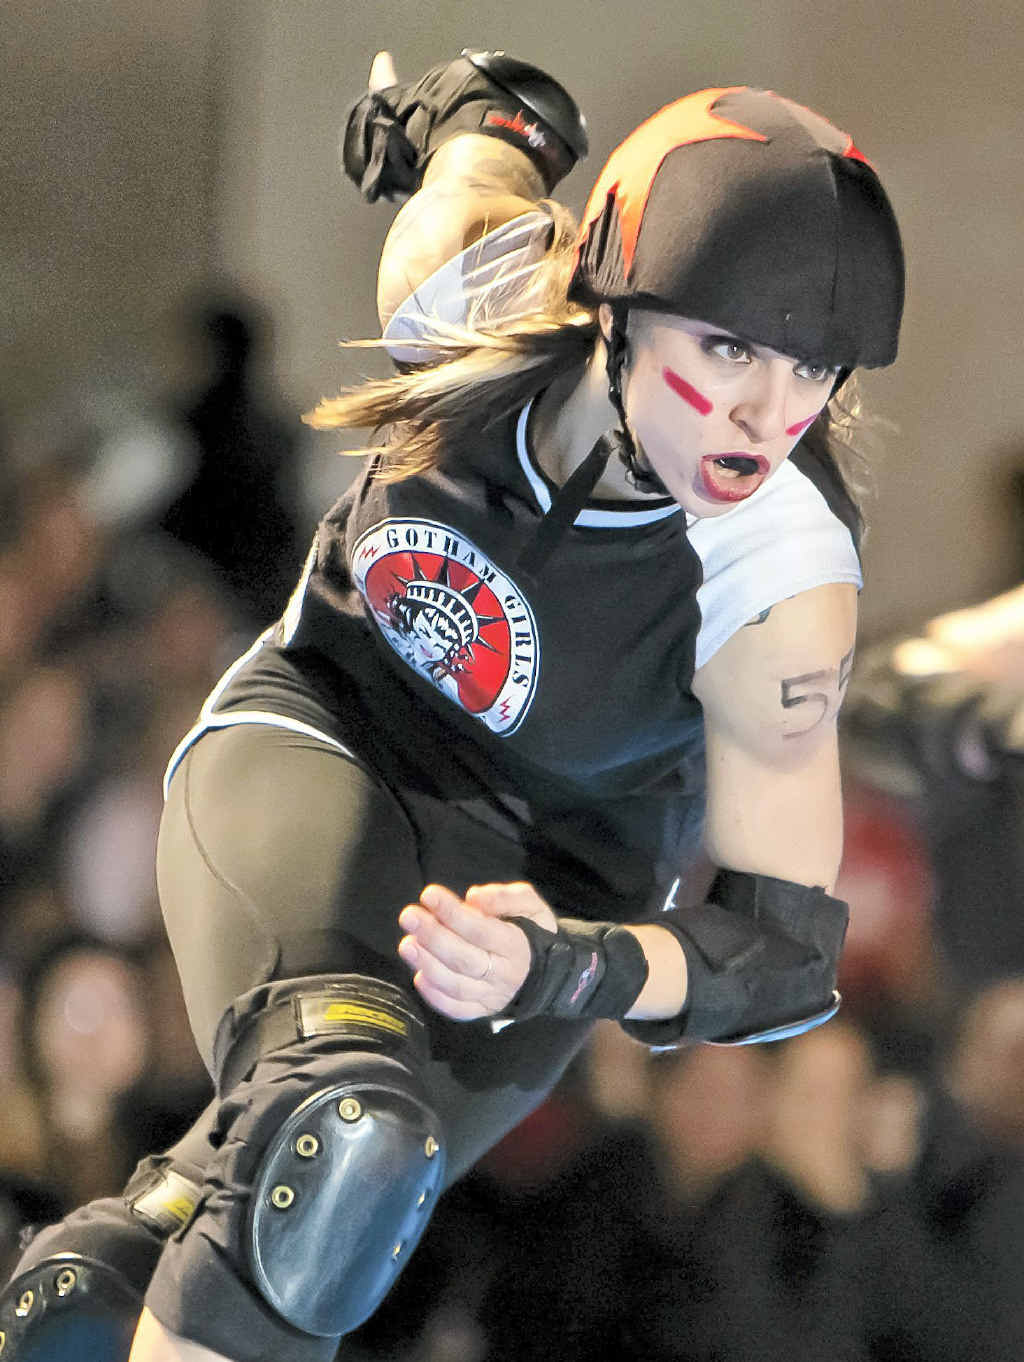 Suzy Hotrod is one of the Gotham City Girls heading to Australia for the Roller Derby Xtreme tour.